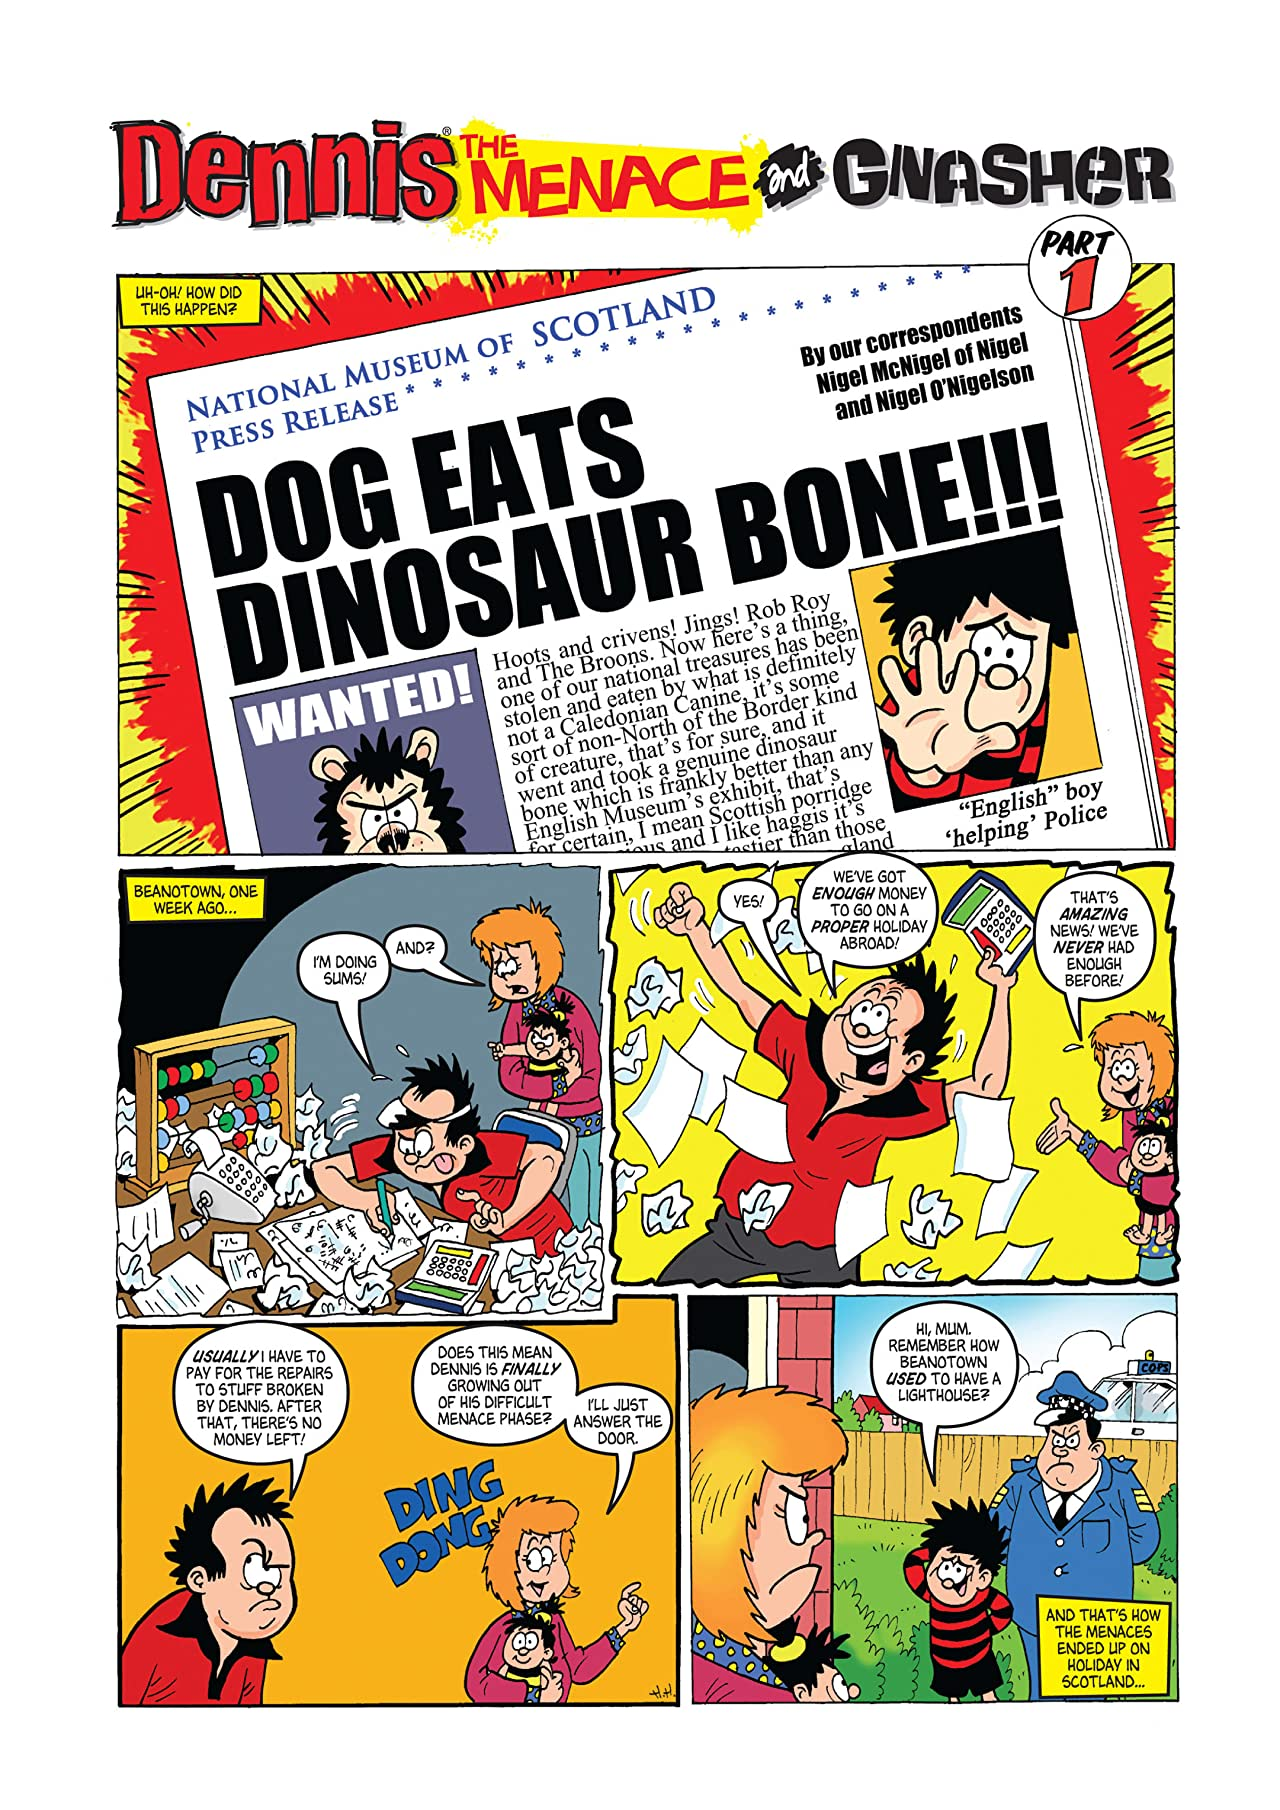 The Beano presents Dennis the Menace and Gnasher Vol. 13: Tanks For the Menacing!